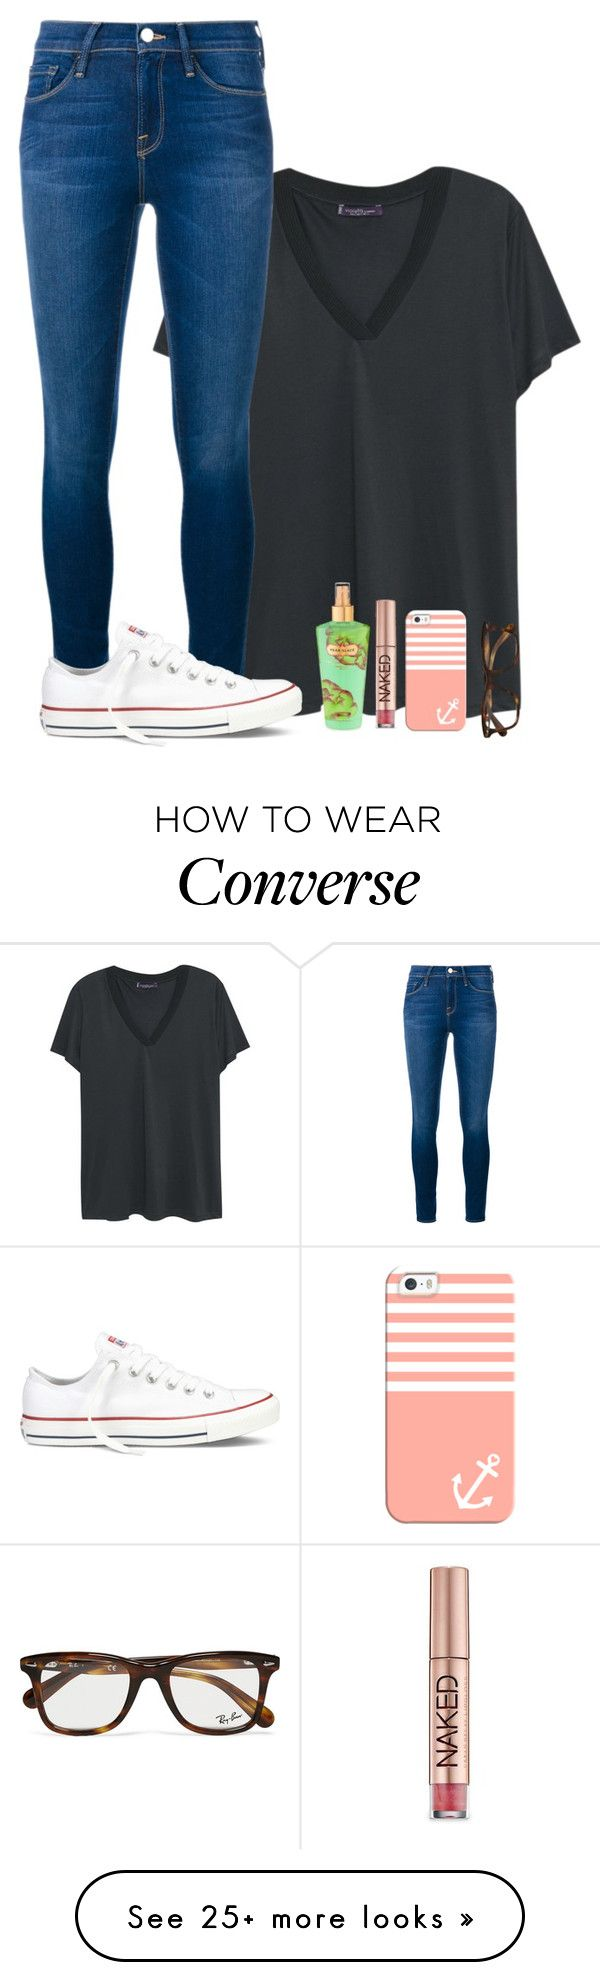 """""""OOTD"""" by theblonde07 on Polyvore featuring Violeta by Mango, Frame Denim, Converse, Victoria's Secret, Urban Decay, Casetify and Ray-Ban"""